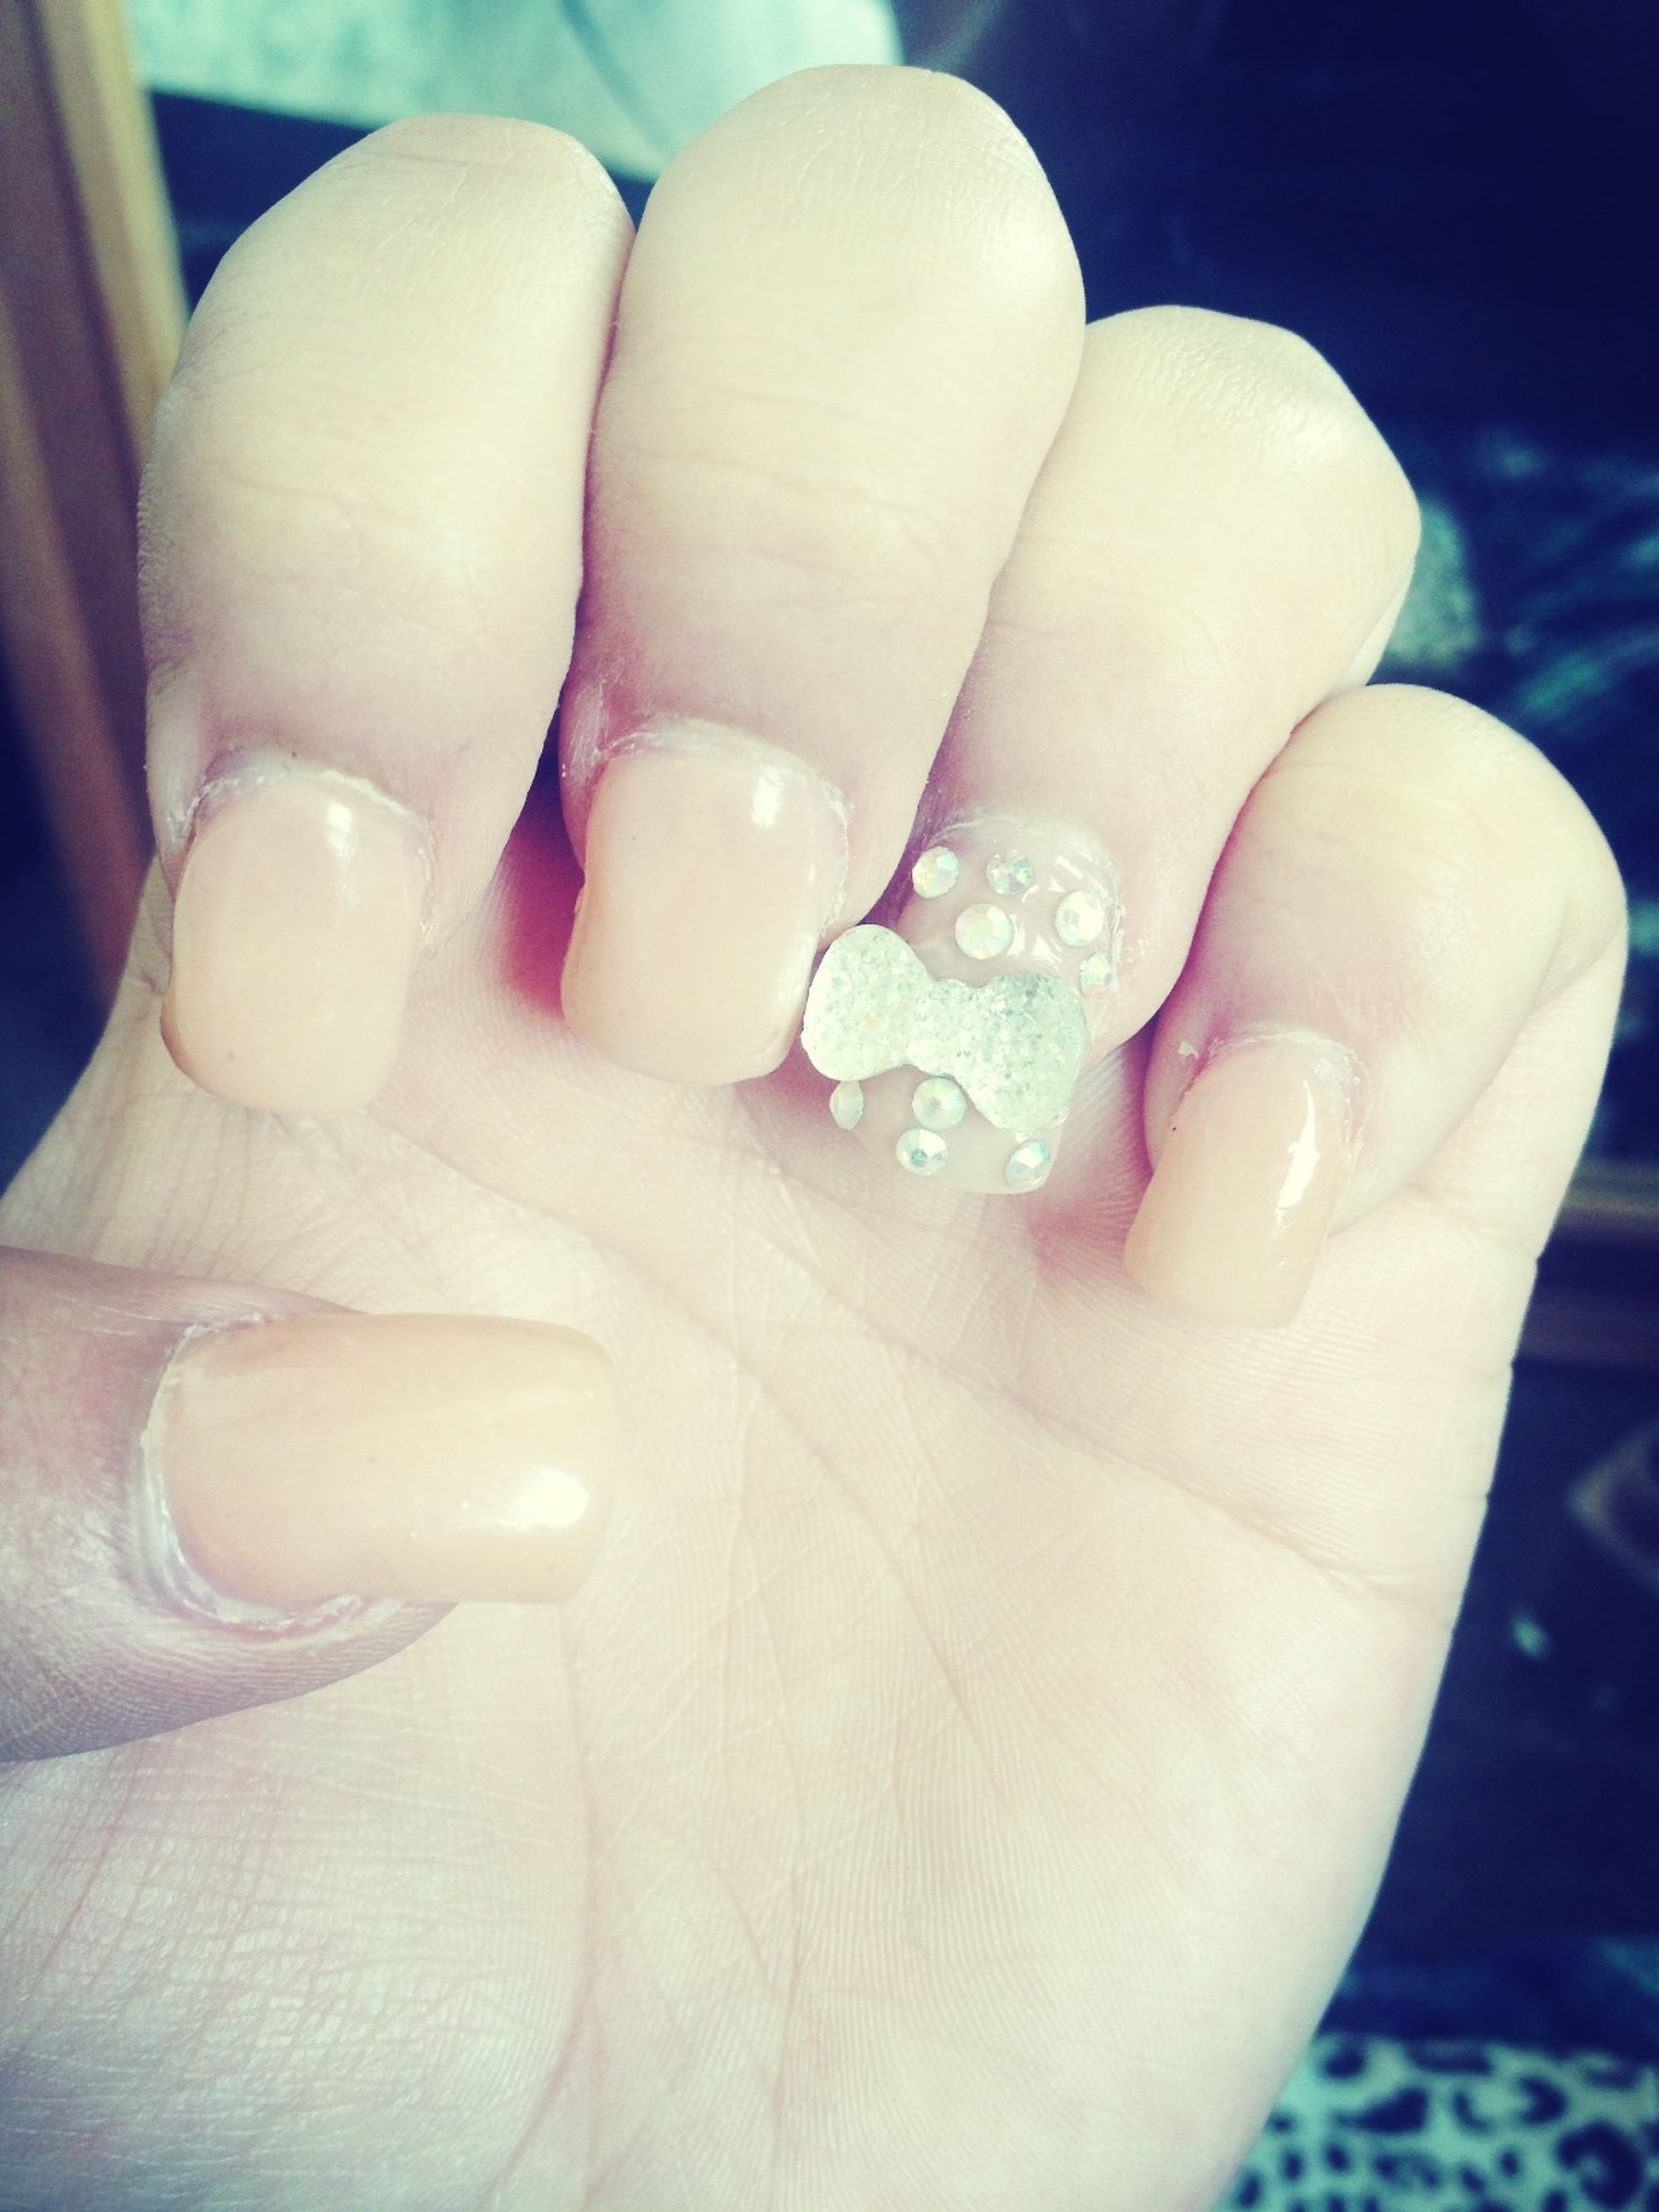 person, part of, human finger, close-up, cropped, holding, indoors, personal perspective, unrecognizable person, ring, showing, nail polish, focus on foreground, palm, lifestyles